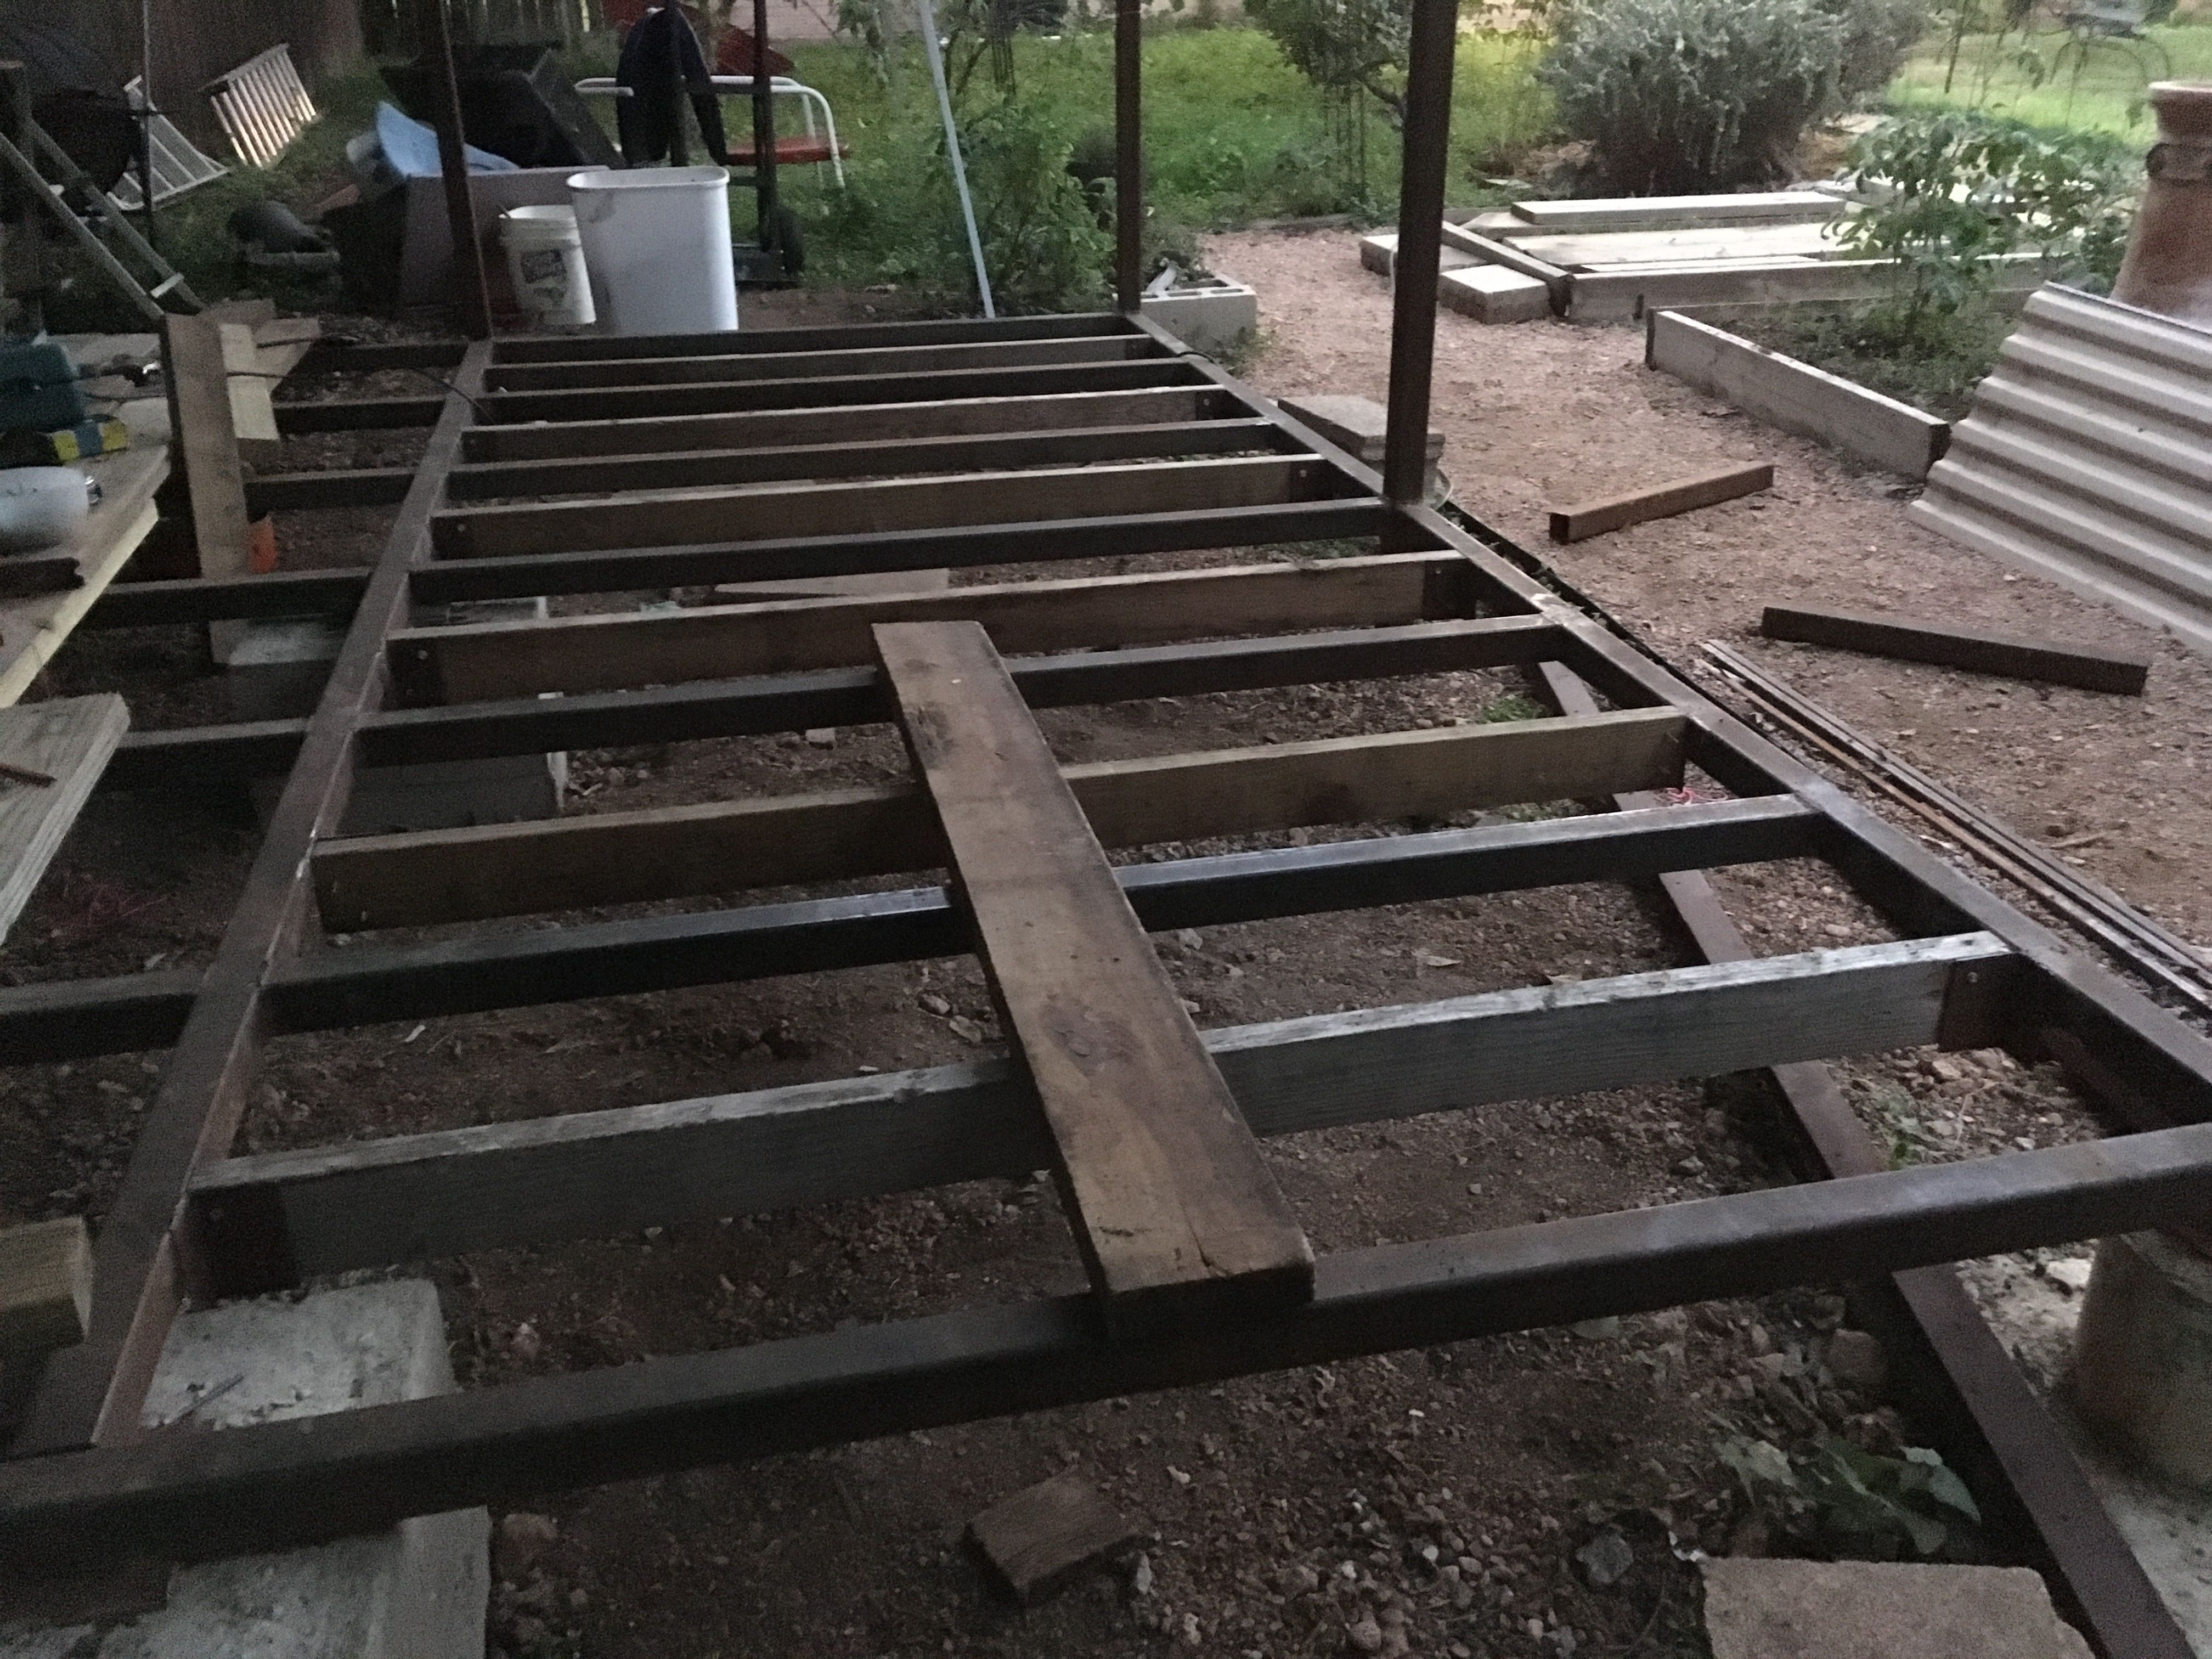 This Shed Floor Structure Uses A Pier And Beam Concept That Combines 2x2 Steel Joists With 2x4 Lumber